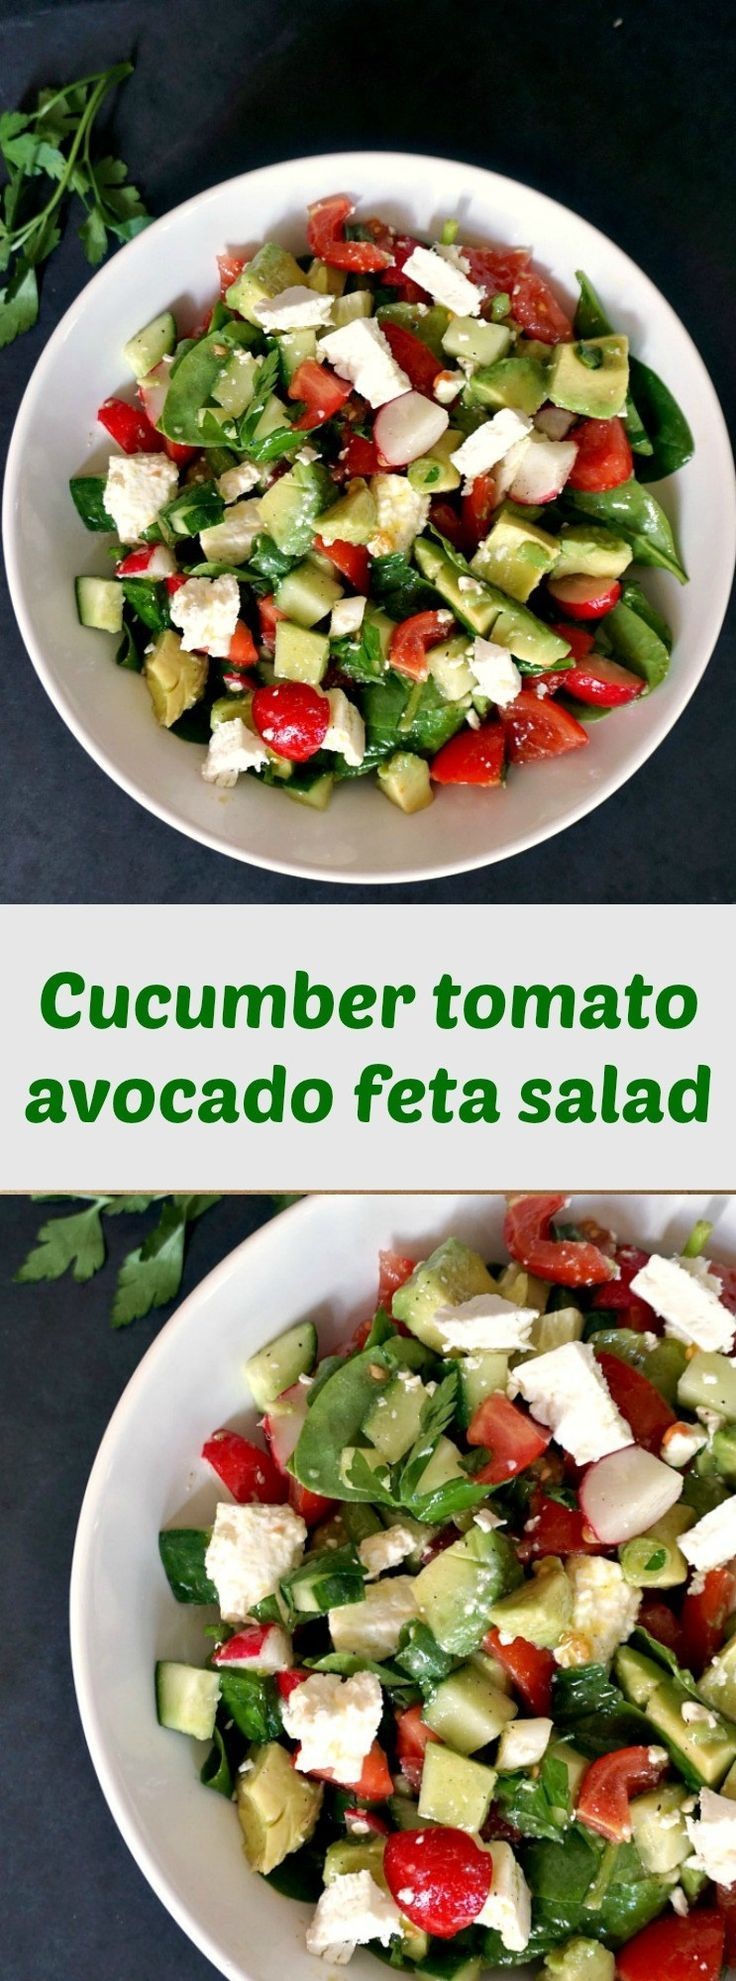 Cucumber tomato avocado feta salad, a healthy and nutritious salad to enjoy all summer long. It has the lightest and simplest 2-ingredient dressing. Such a delicious recipe!